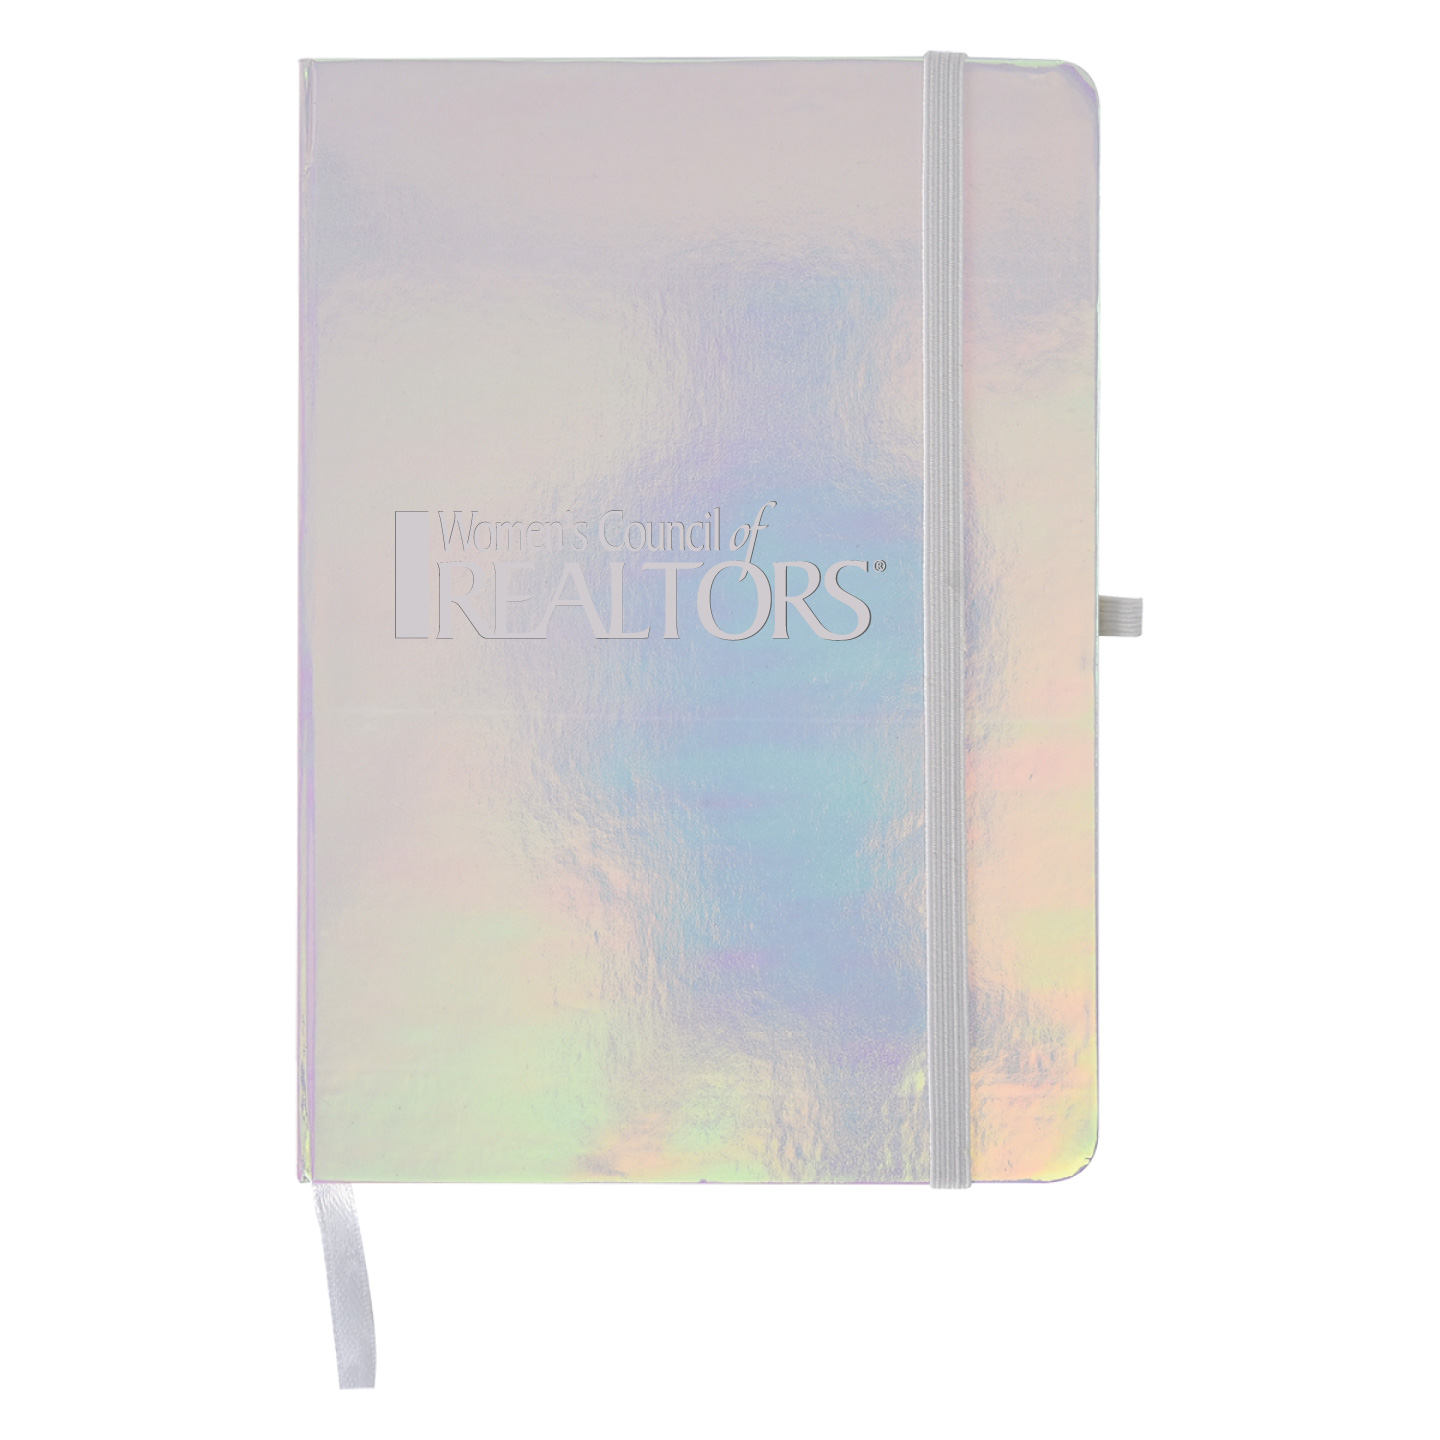 Iris Iridescent Notebook Journals, Journal, Notebook, Paper, Gift, Metallic, Foil, Shiny